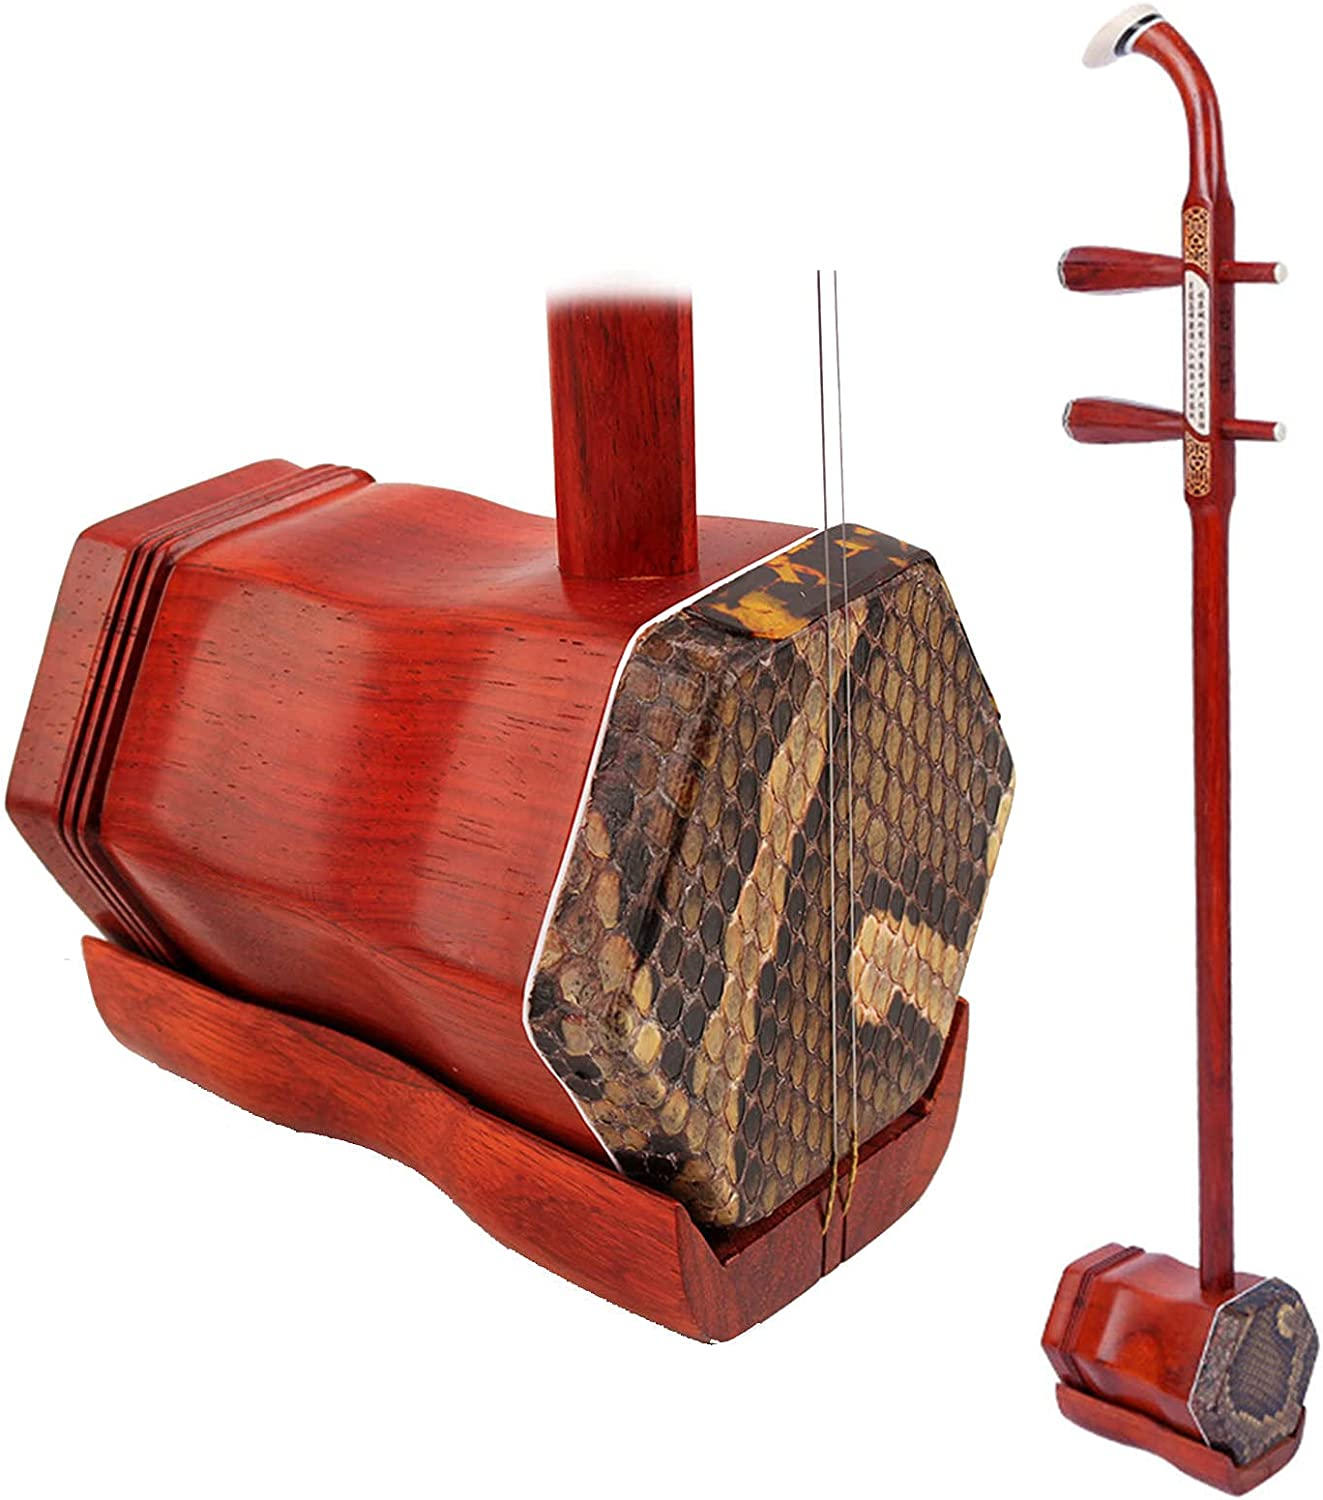 ZWJABYY Erhu Bow Max 71% OFF Gig-Bag Engraved Rosewood Milwaukee Mall and Accessories